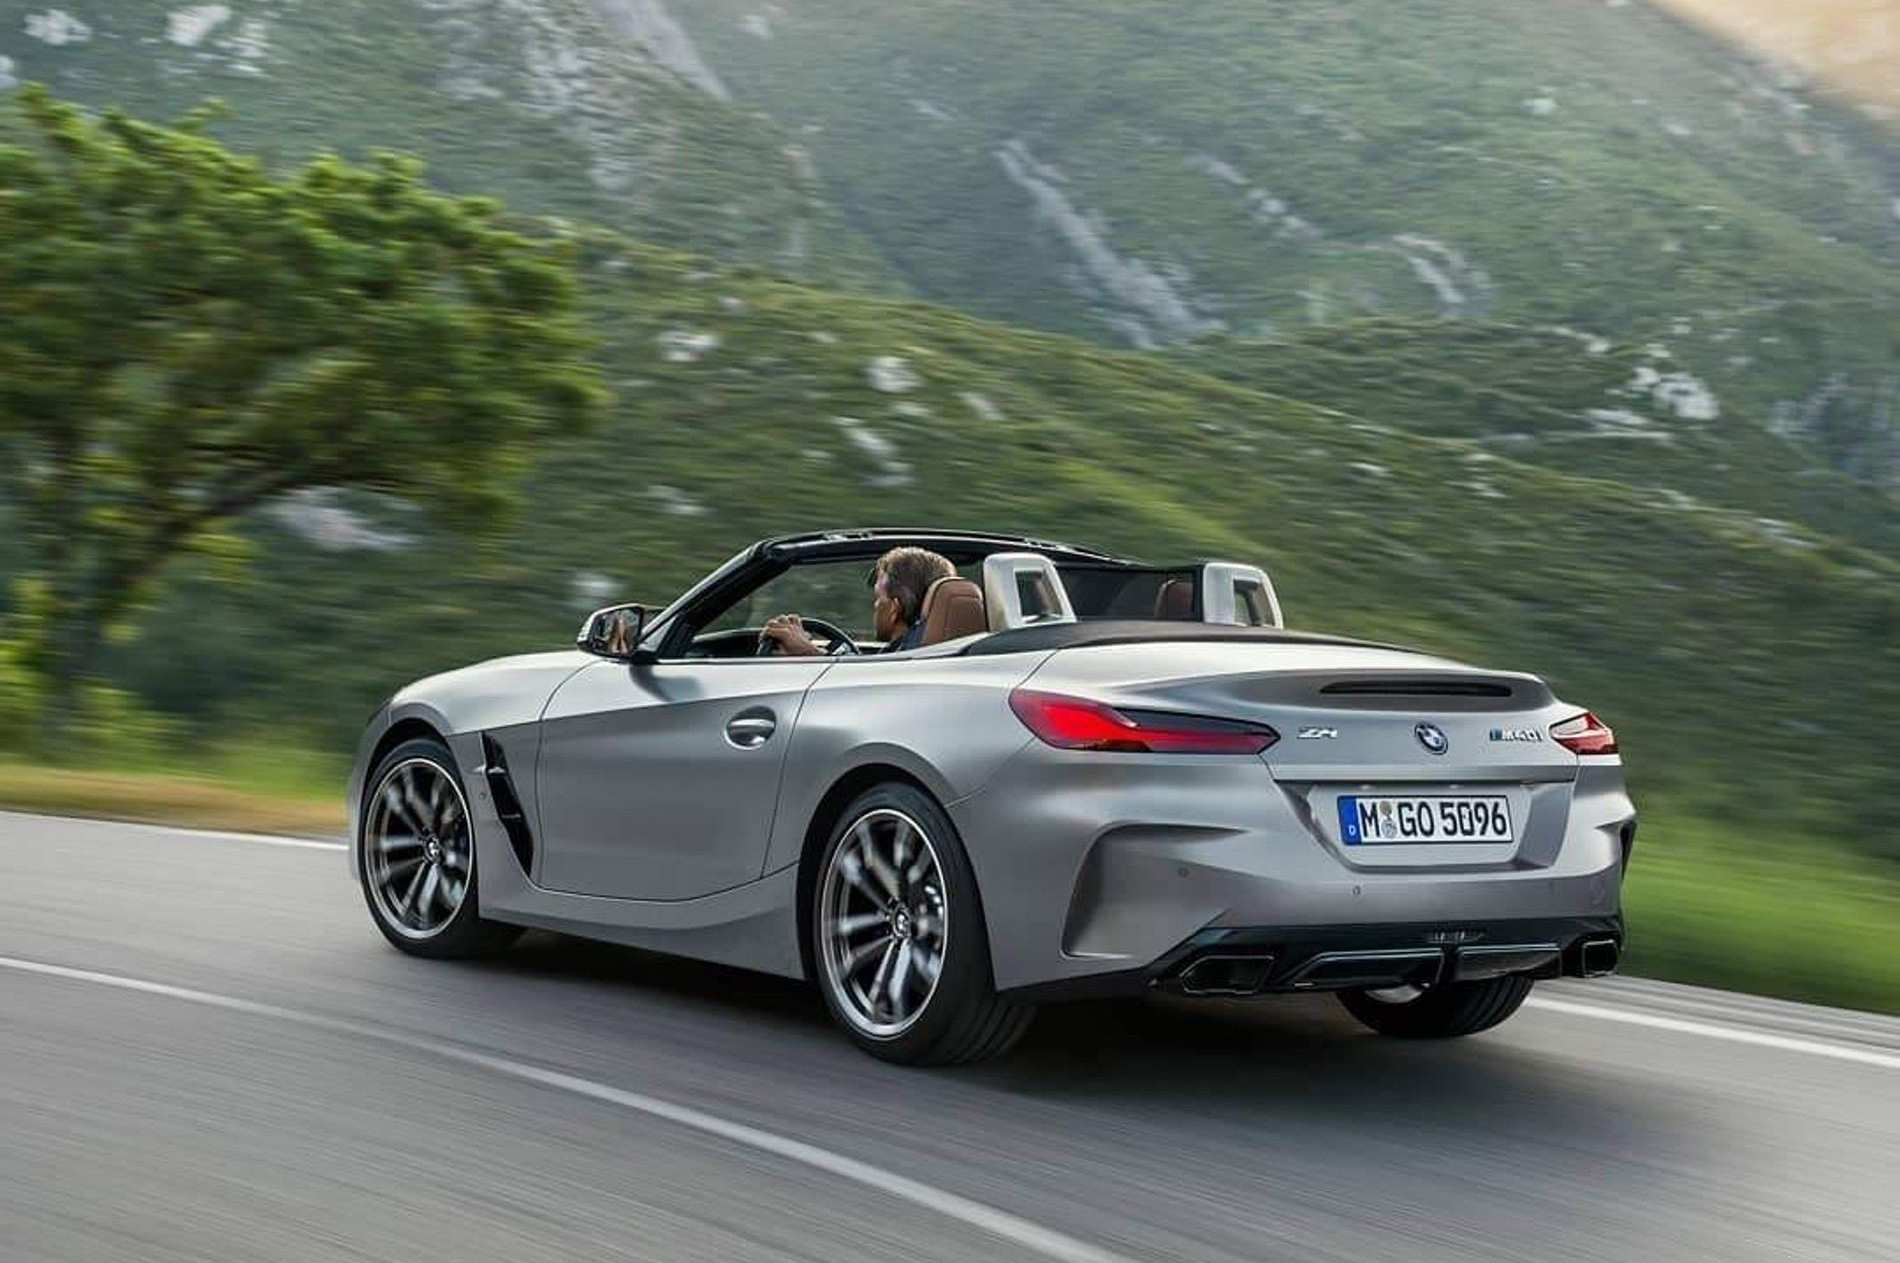 54 All New 2019 BMW Z4 Roadster Release Date And Concept